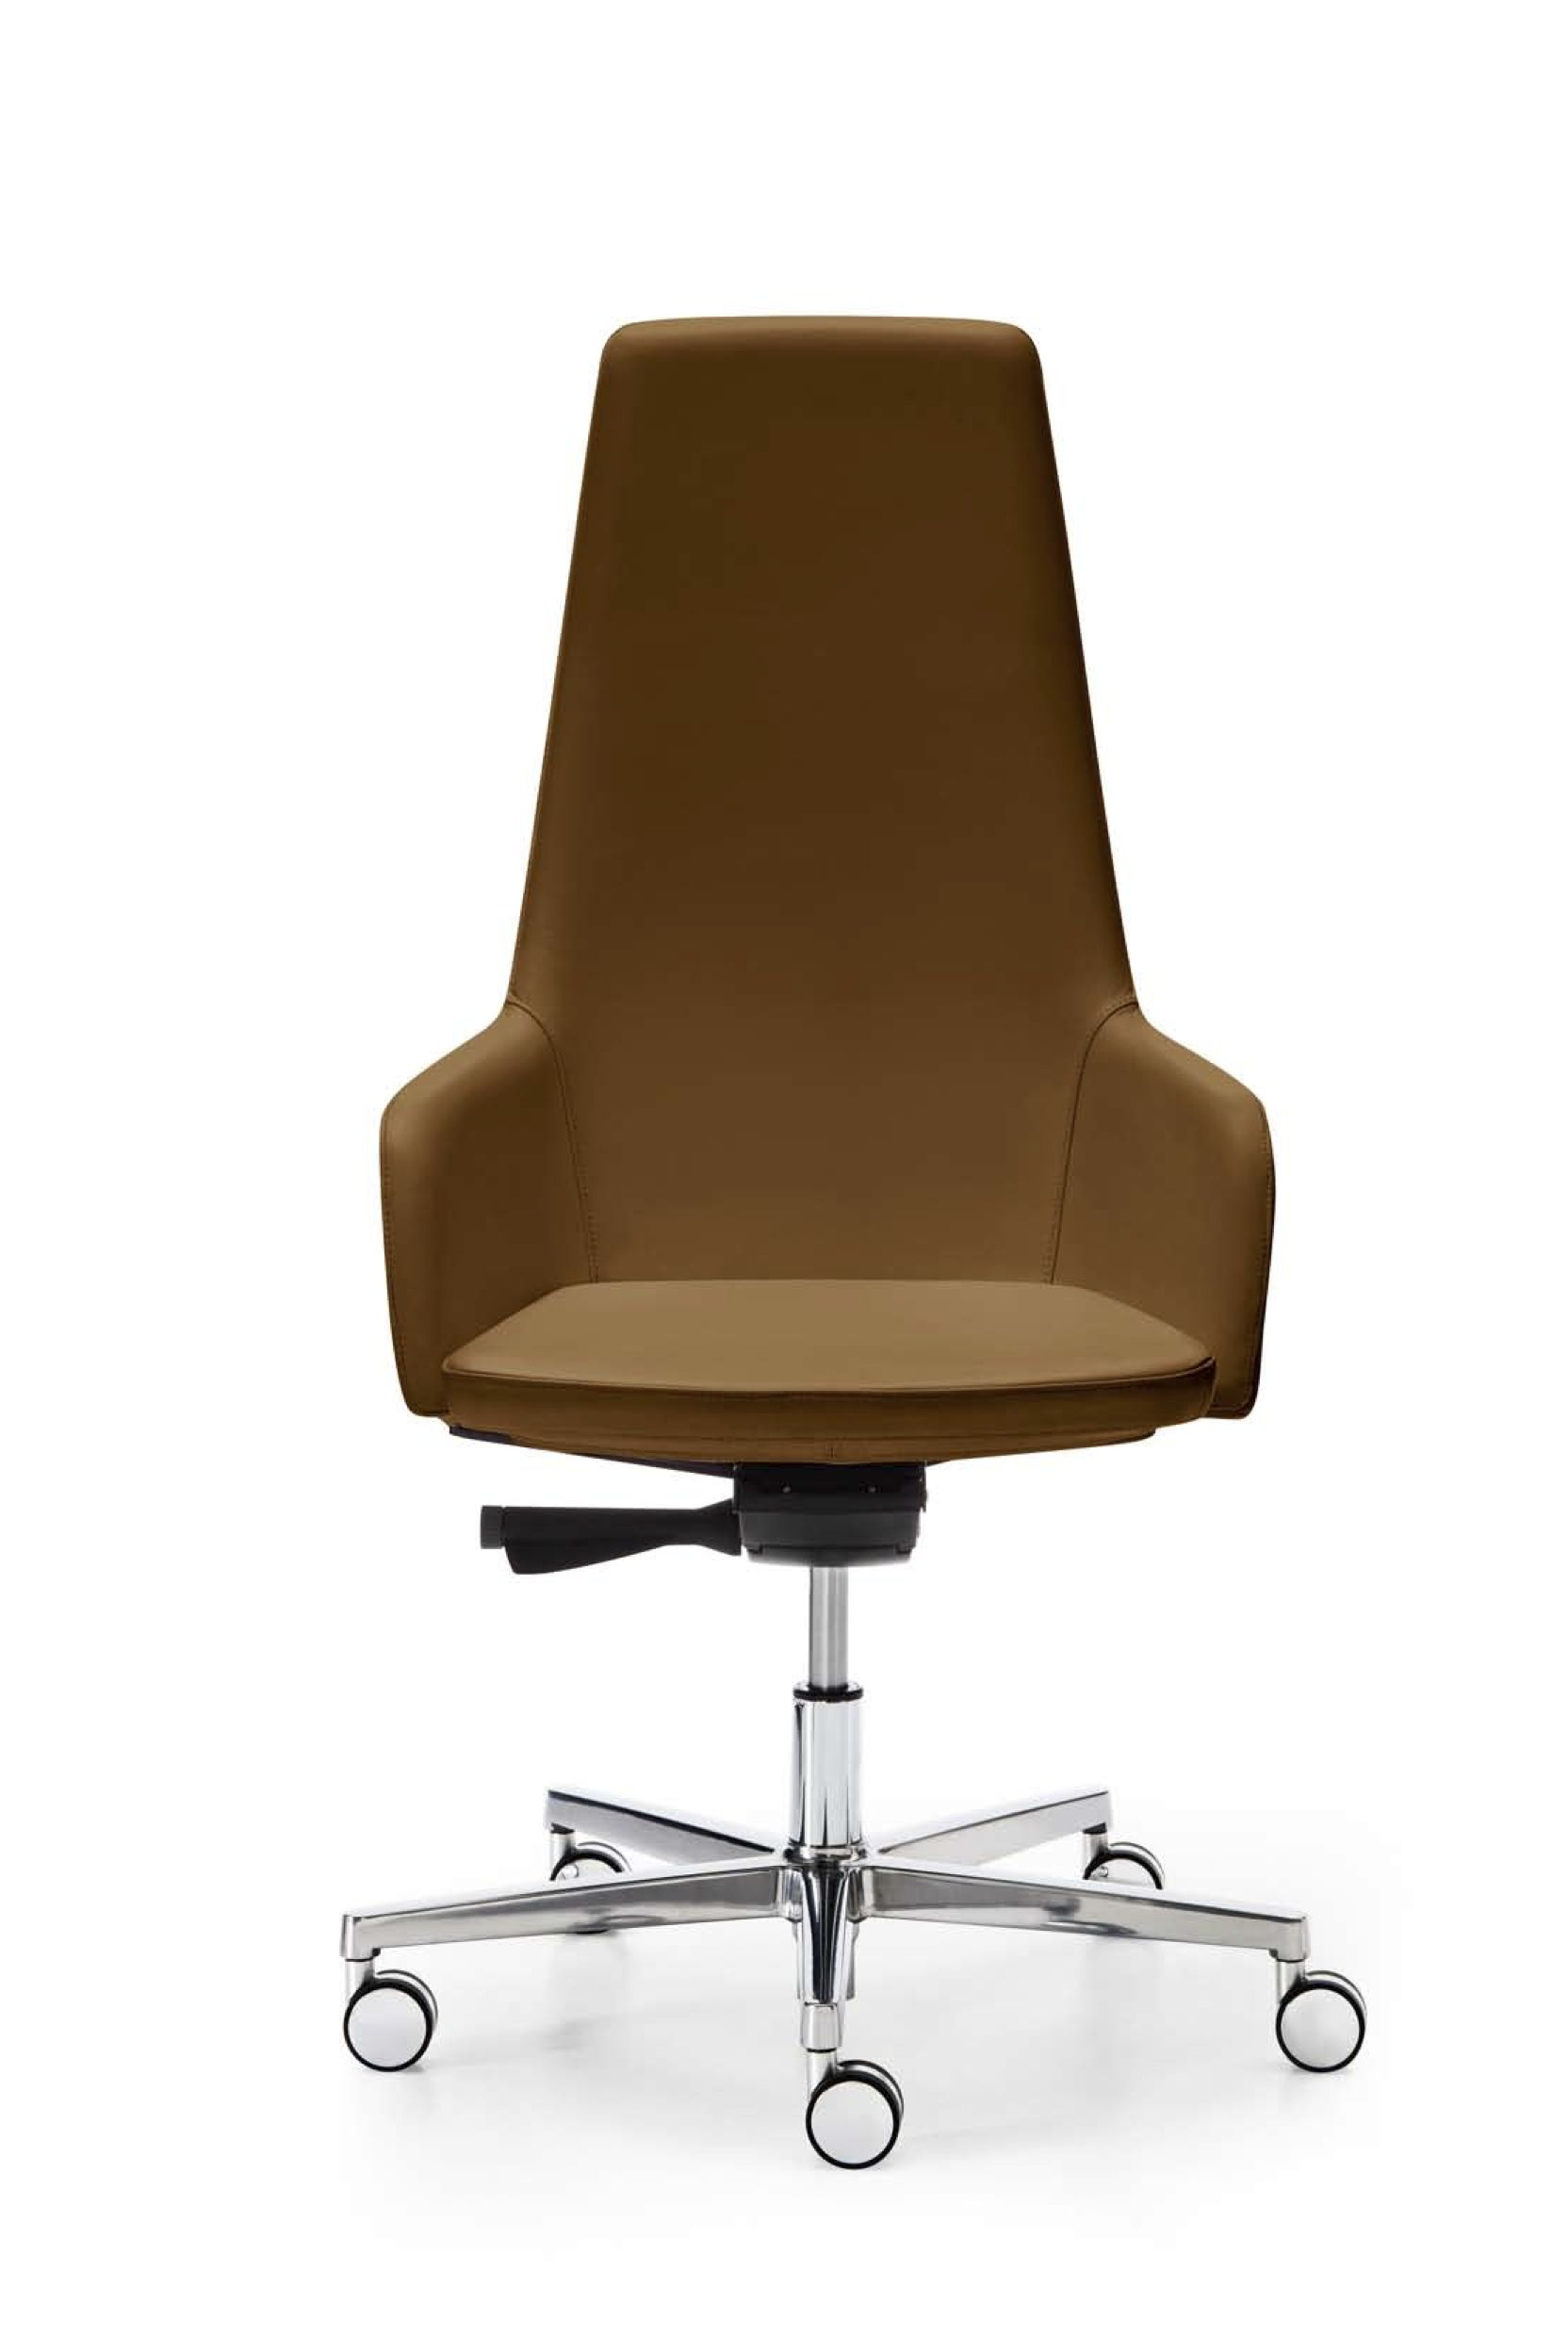 Office Chair Very Ergonomic In Pakistan The Captain Features Solid Armrests And Sleek Curved Wrap Around Seat Make Comfortable Beautiful